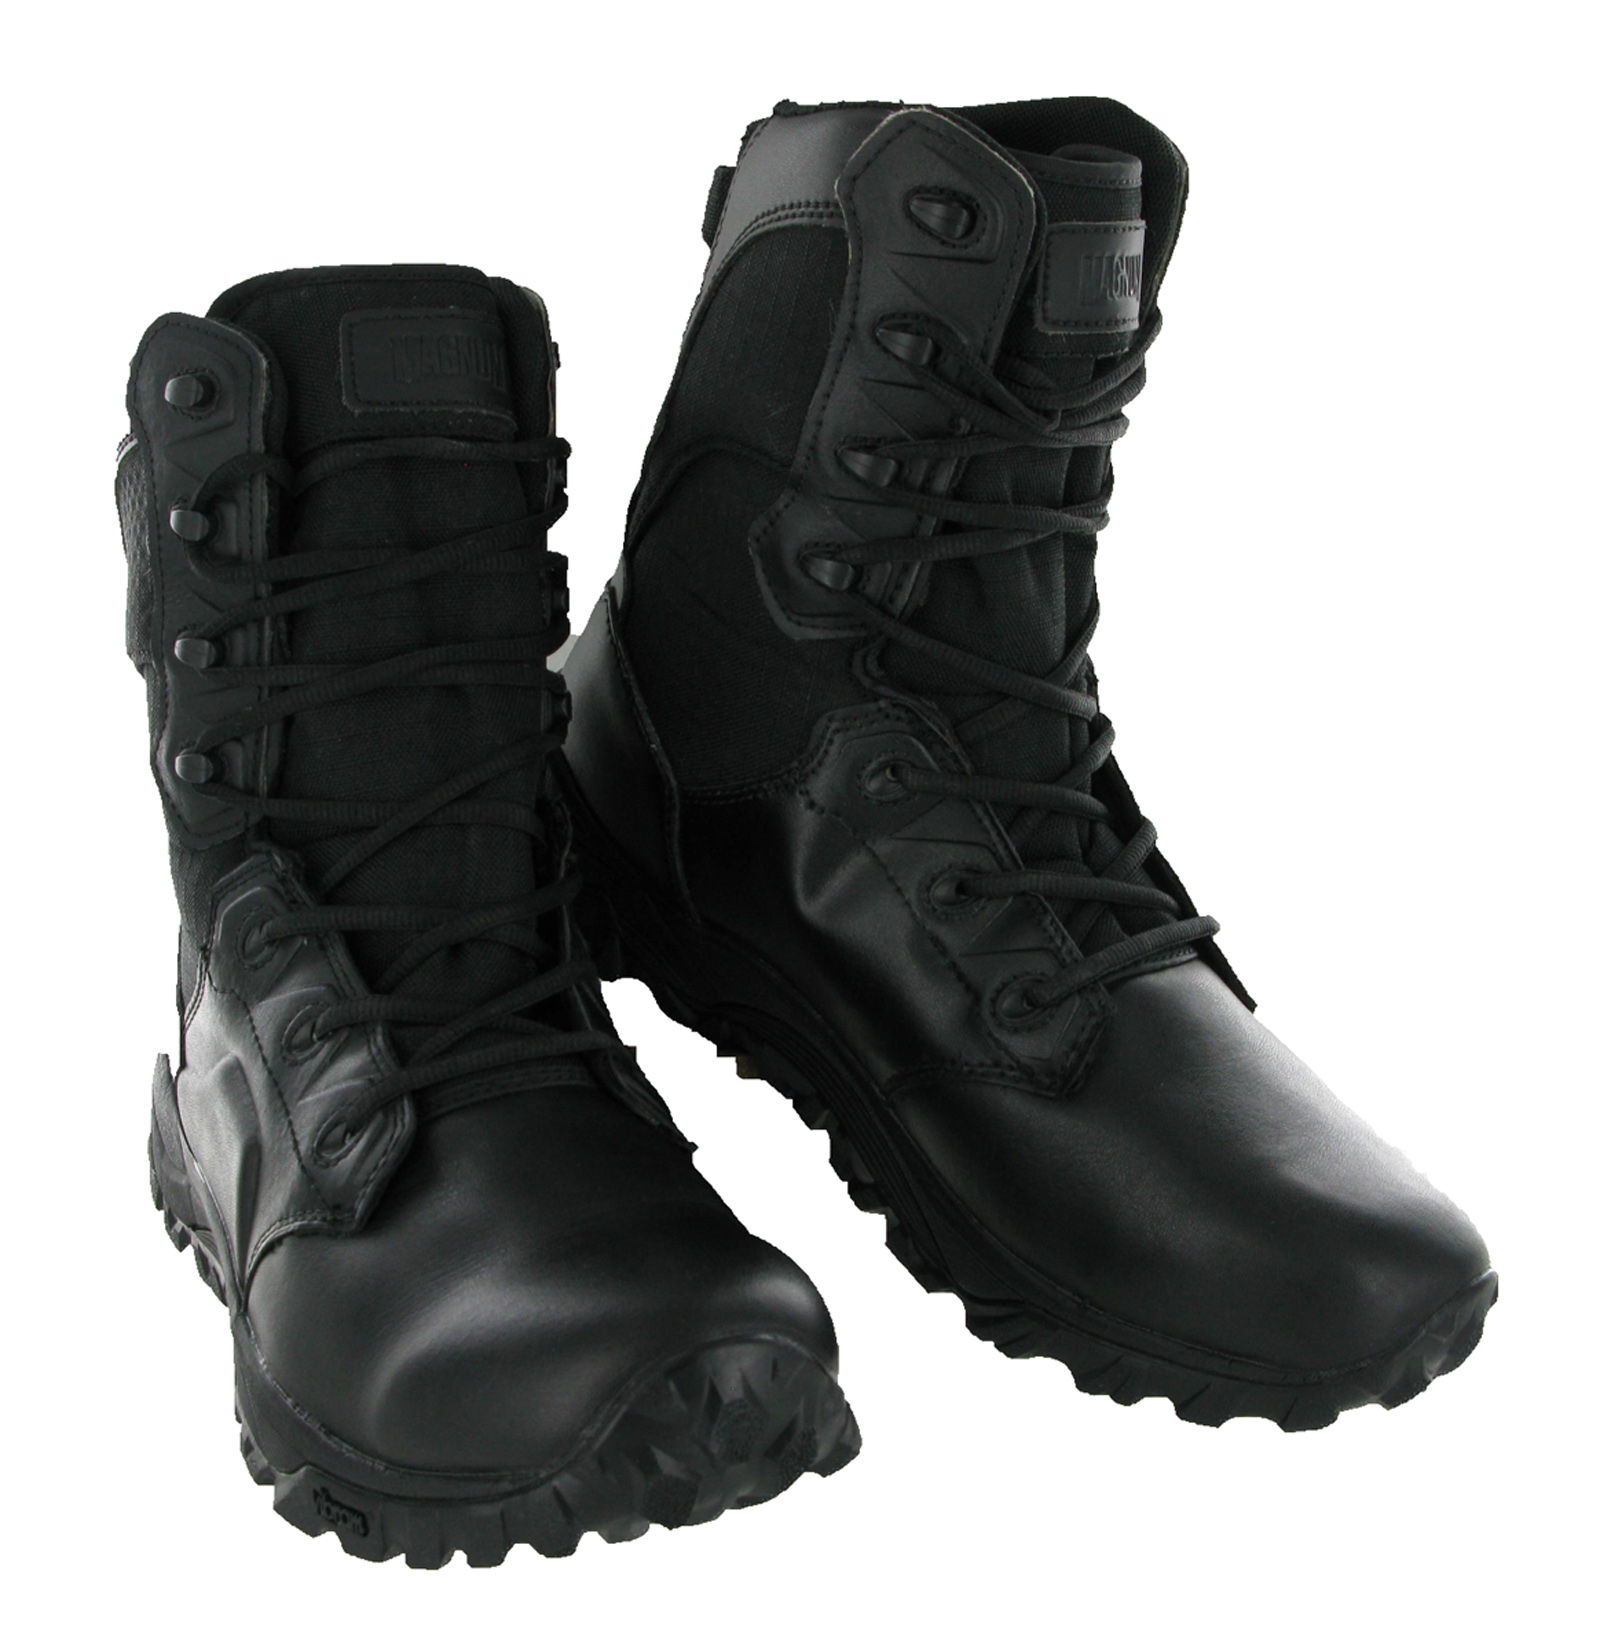 New Men Magnum Mach 2 8.0 Black Lightweight Combat Police Ankle ...